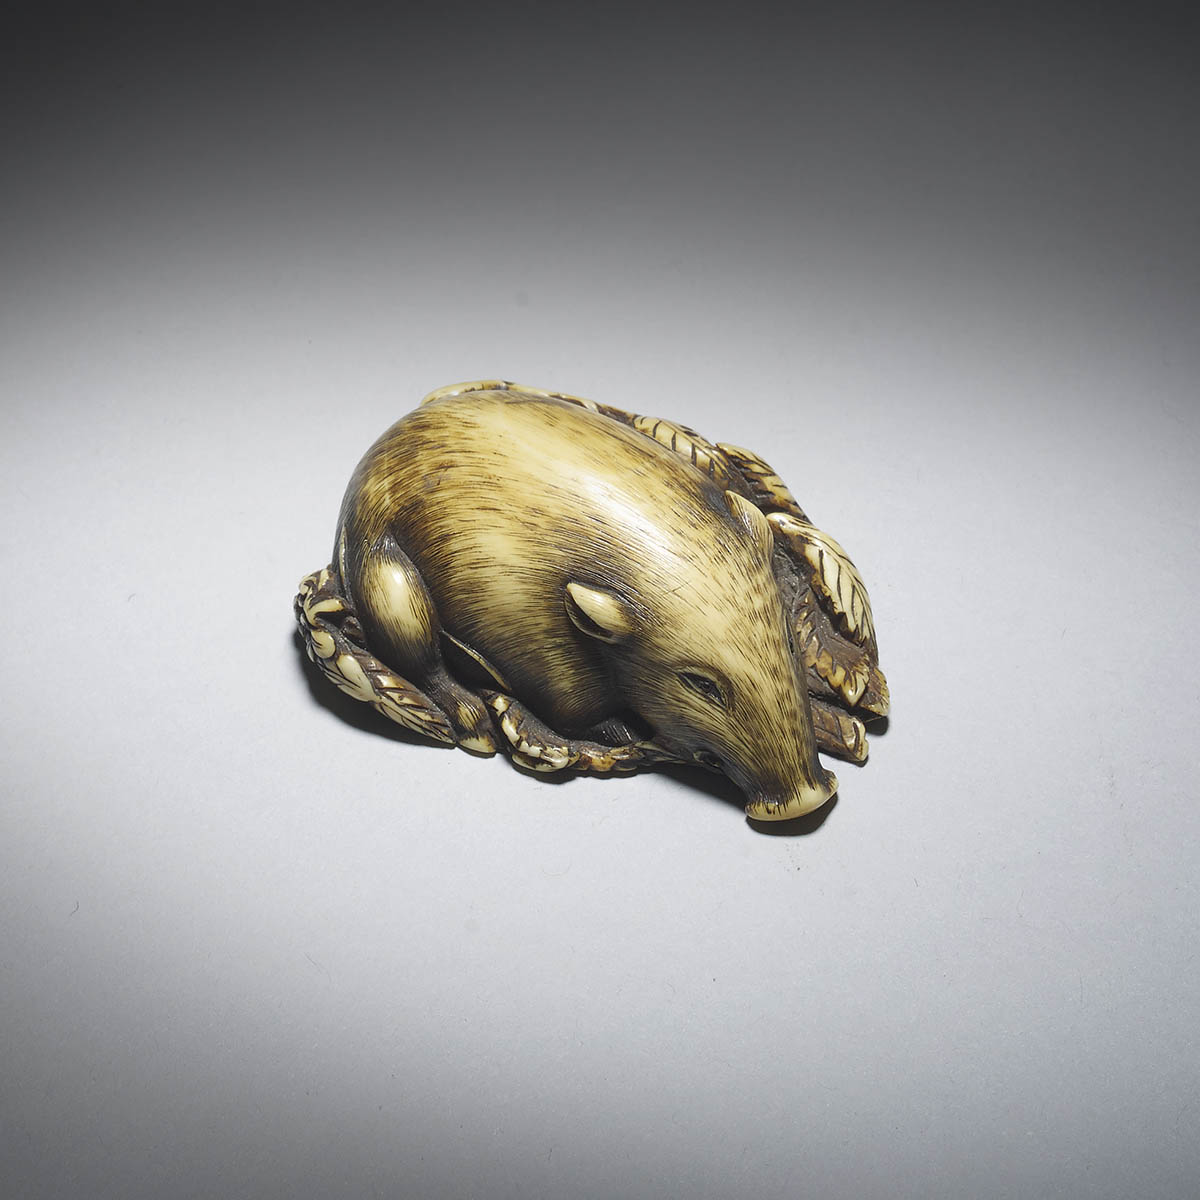 Ivory netsuke of a Boar sleeping on leaves